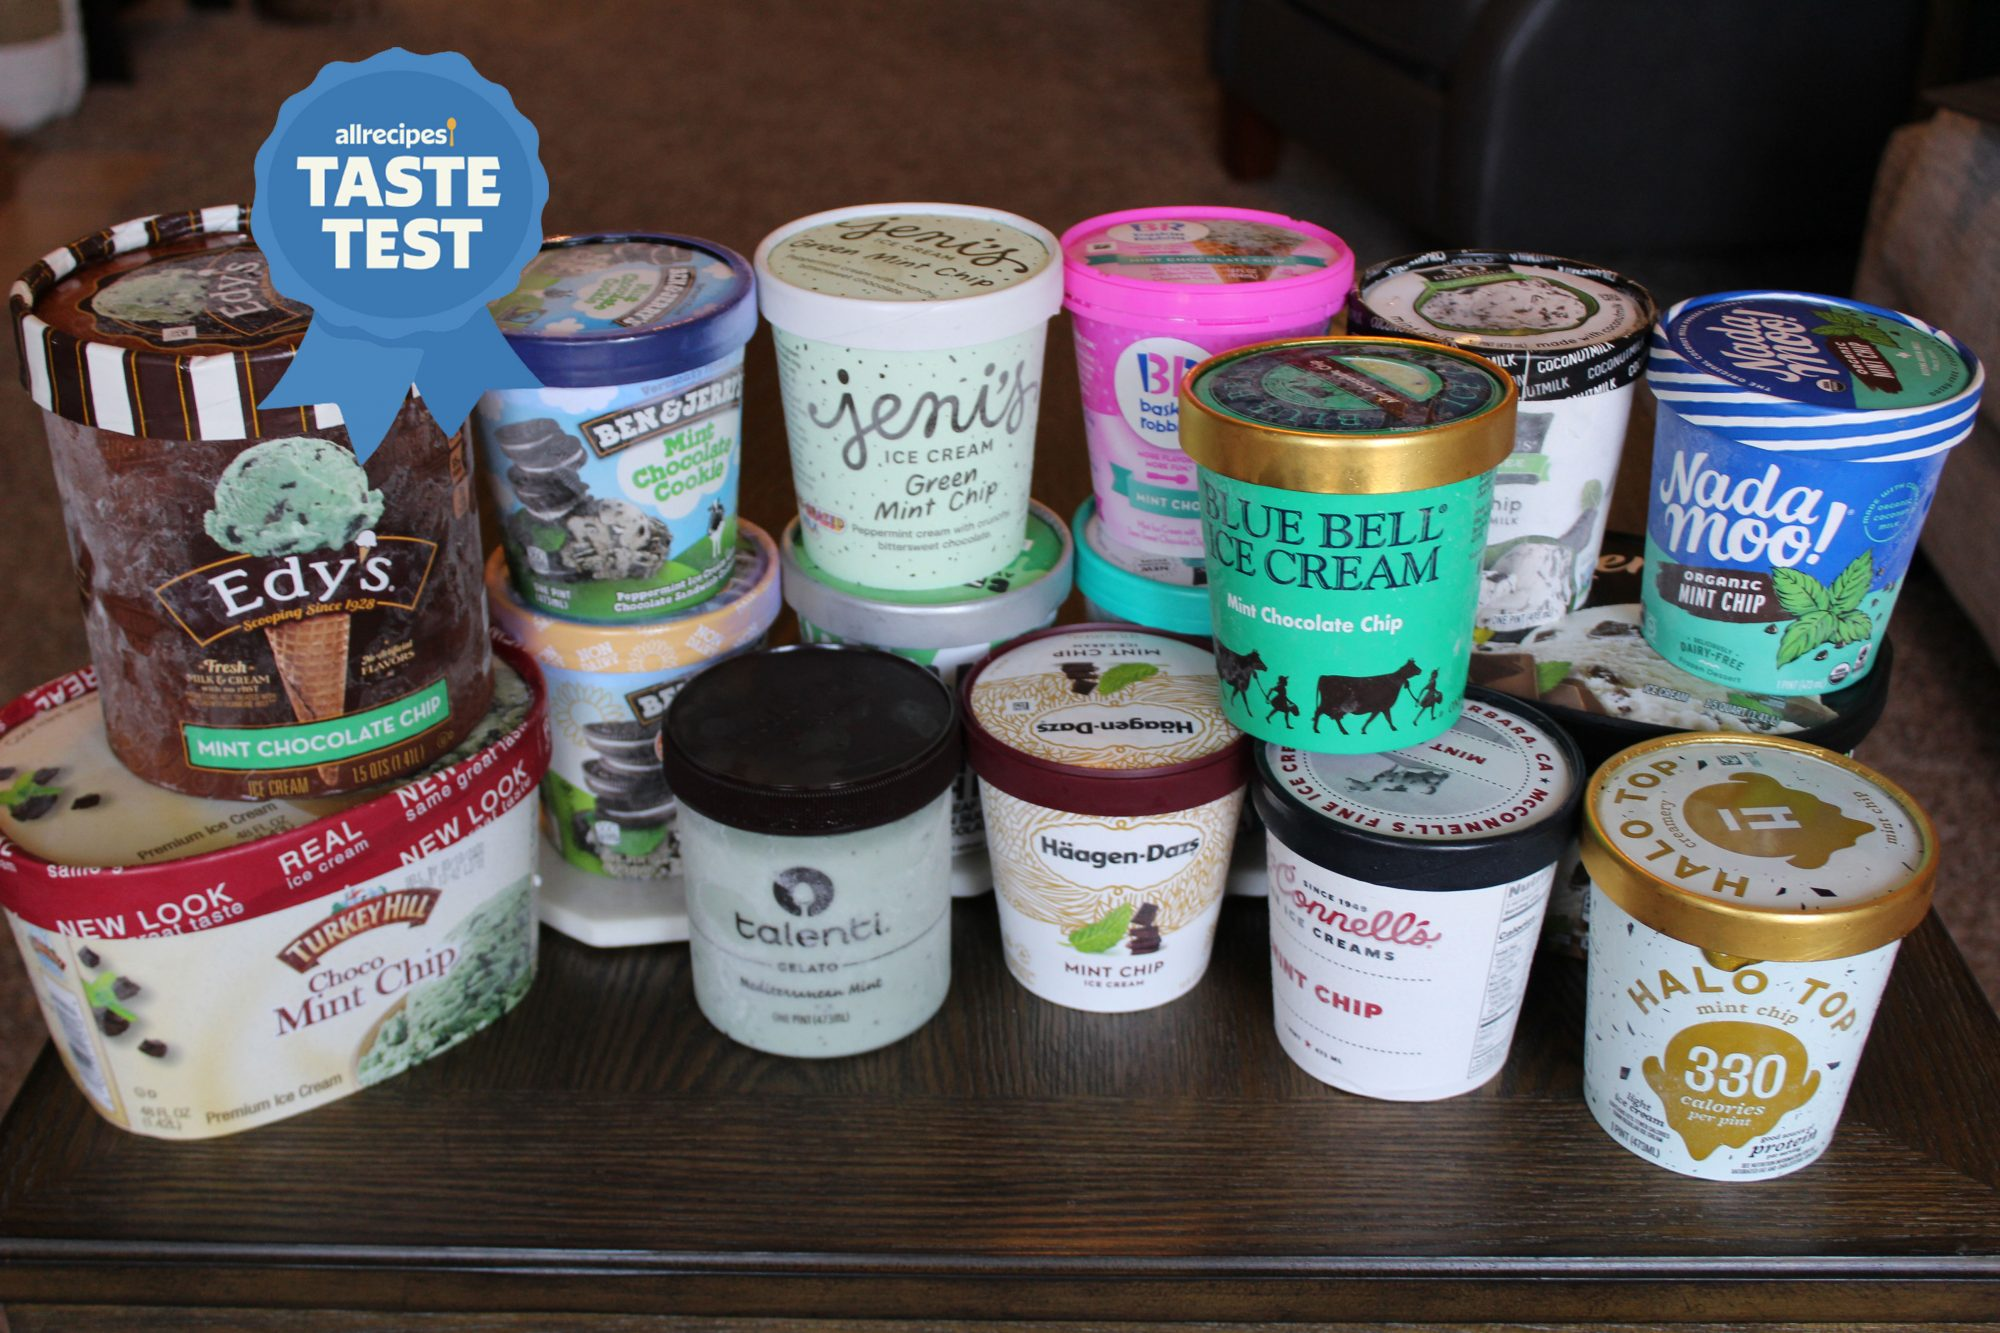 16 different pints of mint chocolate chip ice cream on table with allrecipes taste test ribbon